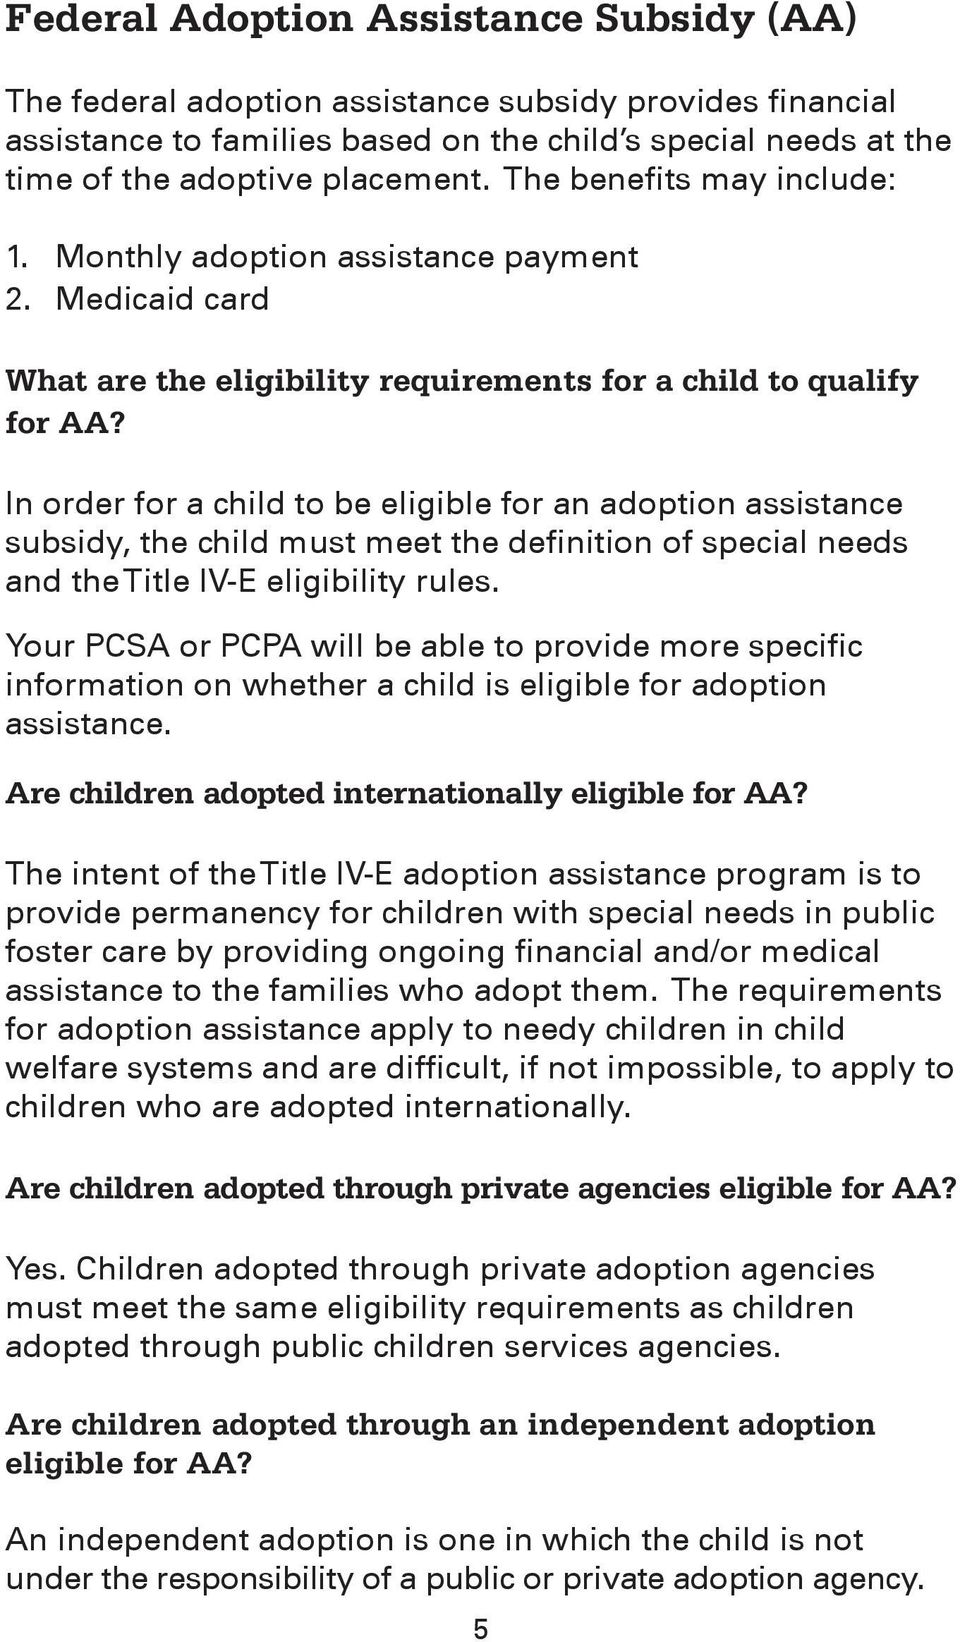 In order for a child to be eligible for an adoption assistance subsidy, the child must meet the definition of special needs and the Title IV-E eligibility rules.